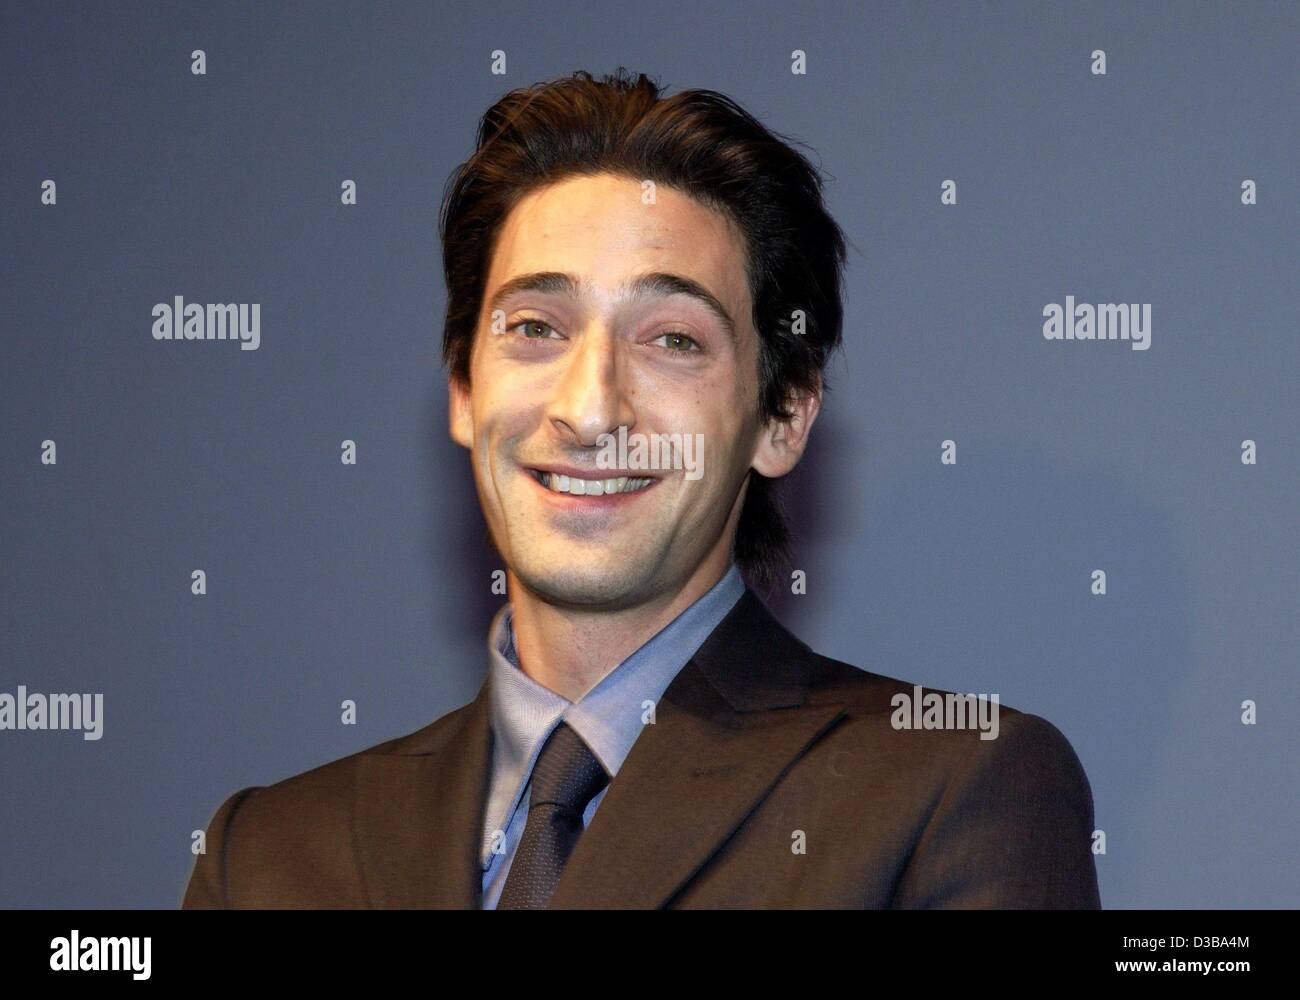 (dpa) - US actor Adrien Brody presents his new film 'The Pianist' which premieres in Berlin, 21 October - Stock Image